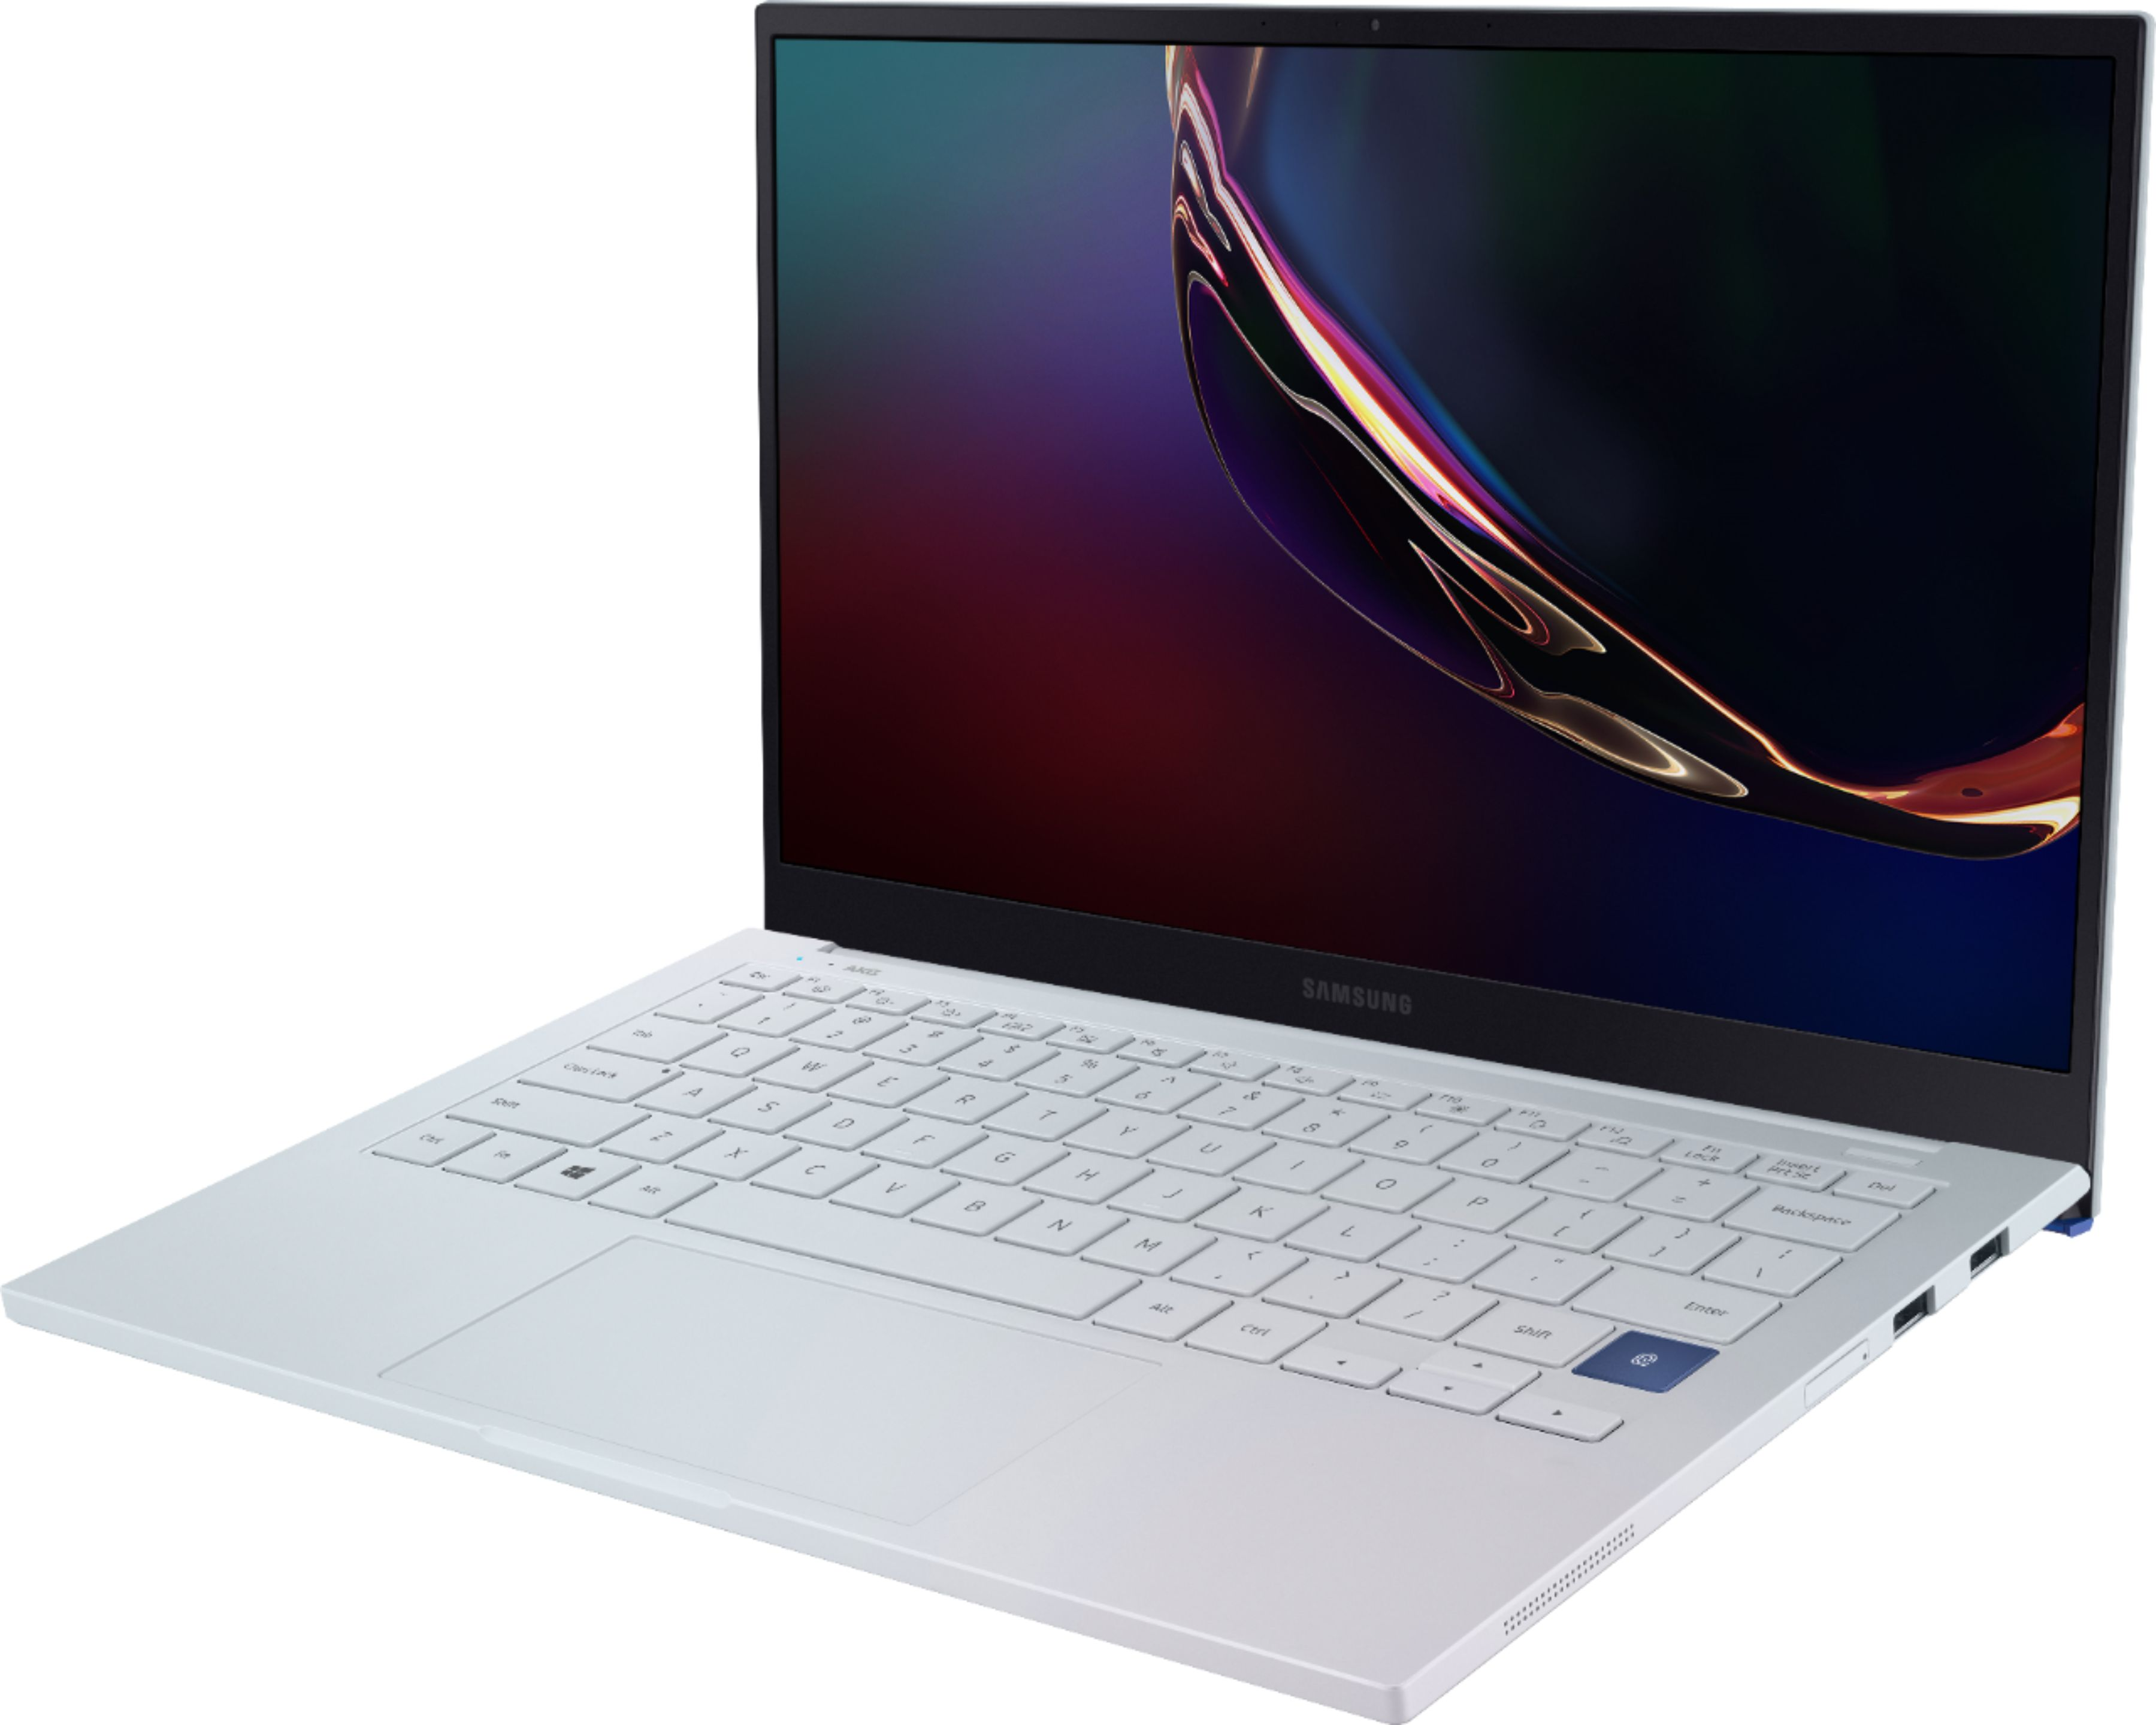 "Left Zoom. Samsung - Galaxy Book Ion 13.3"" Laptop - Intel Core i7 - 8GB Memory - 512GB SSD - Aura Silver."